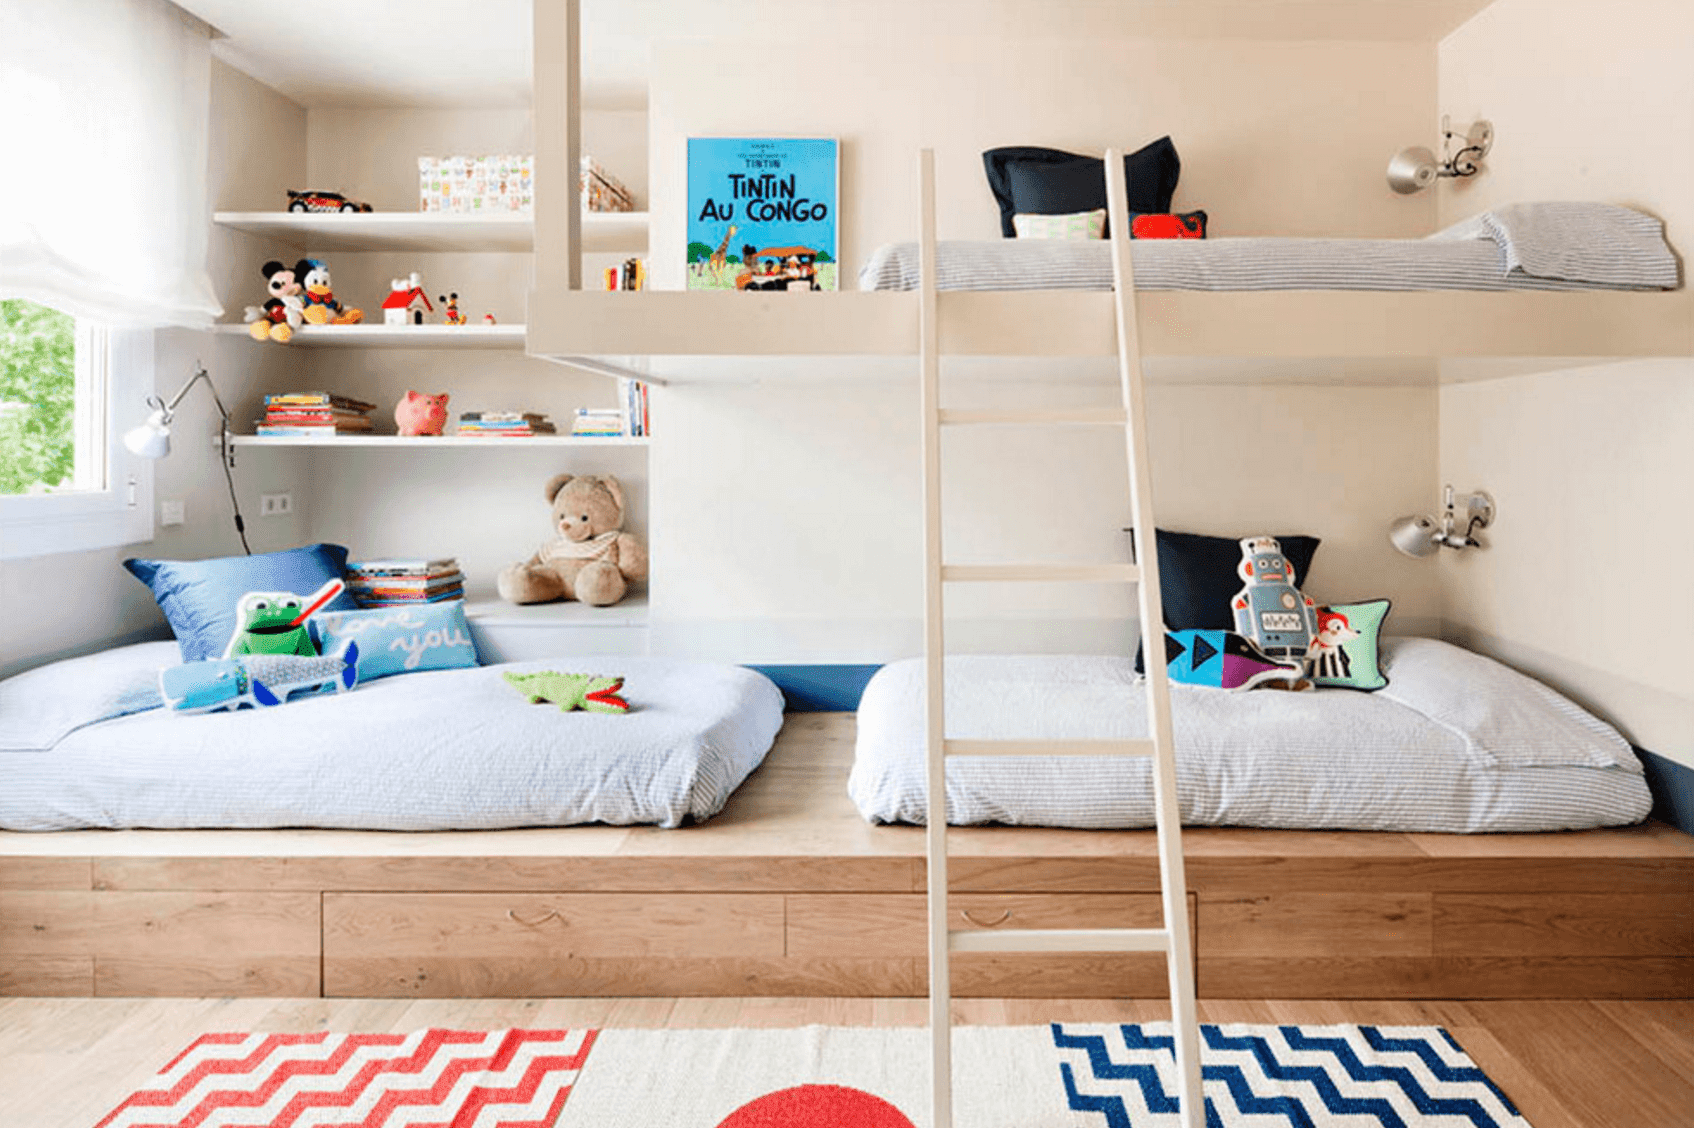 Two Beds In One Small Room Toddler Boy Ideas Ikea Kids Bedroom Designs Bunk White Frame Cool With Twin Grinding Corn Together Apppie Org